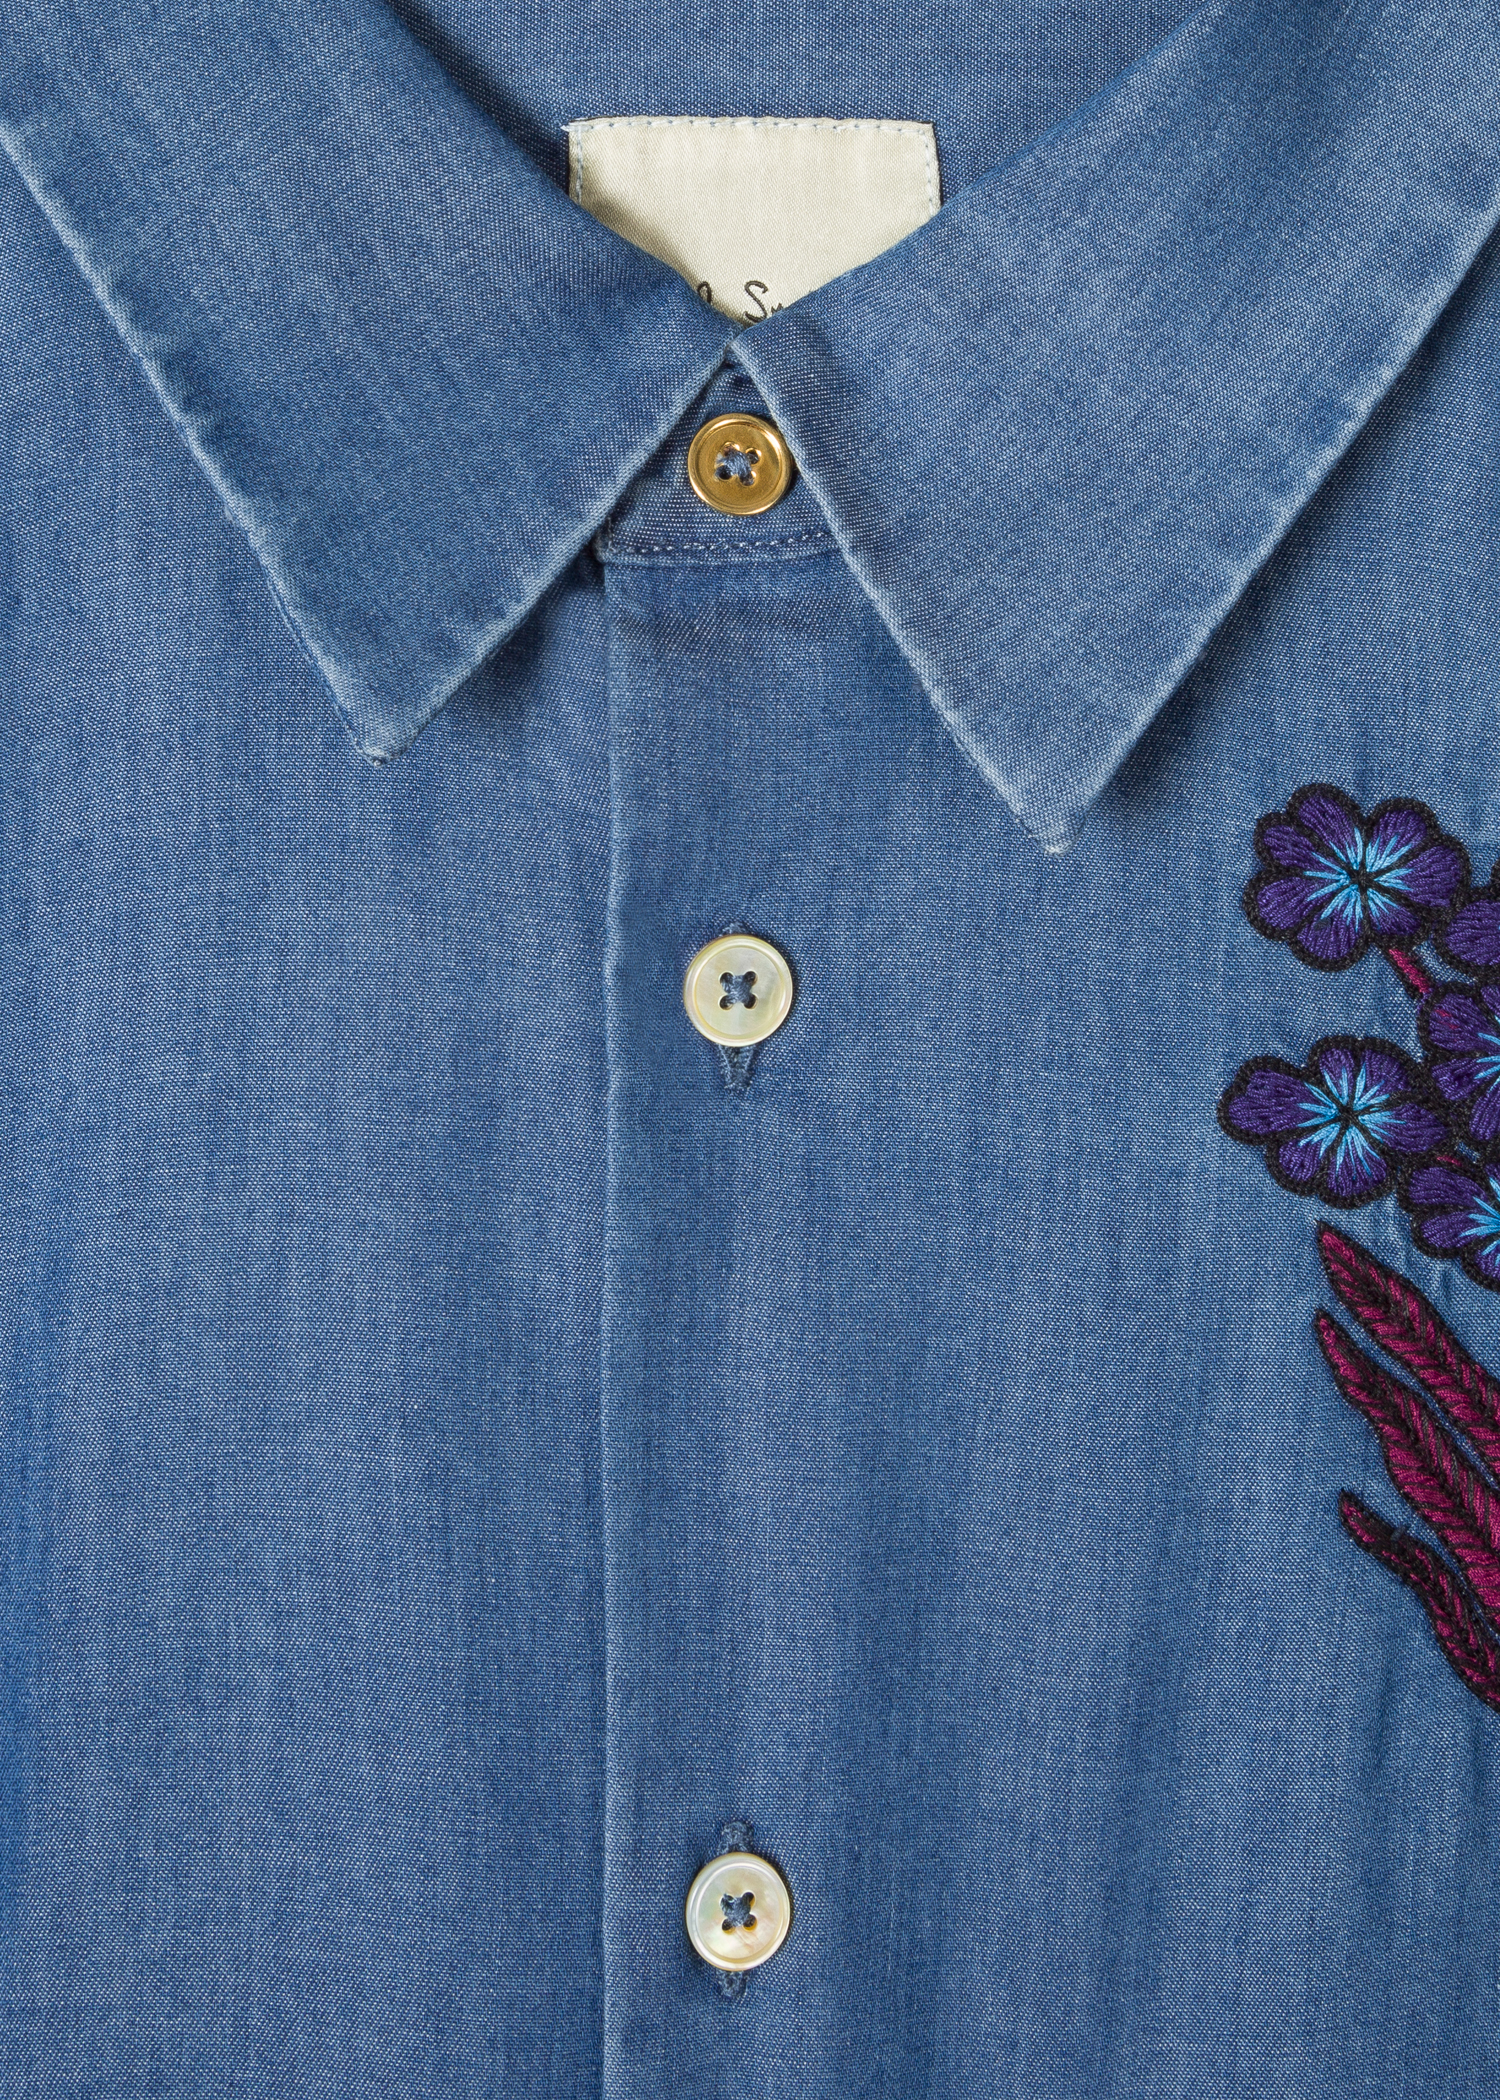 ad4243a2cee6 Collar detail - Men's Slim-Fit Blue Chambray Shirt With 'Explorer' Embroidery  Paul